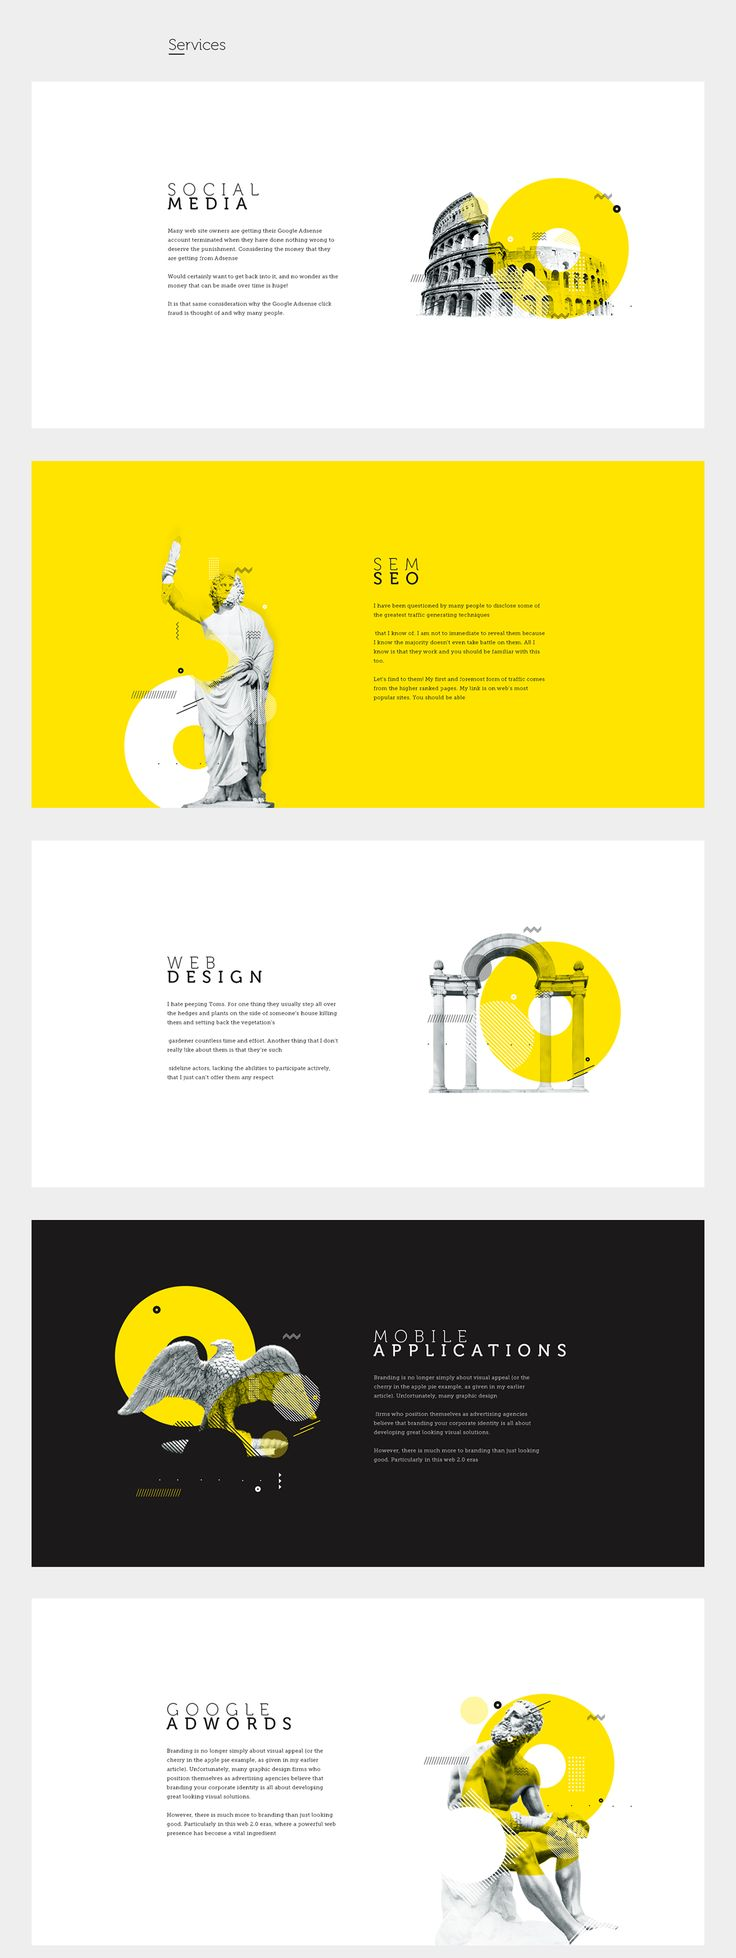 Way to present work on a portfolio page – Hero Image on one side, description on the other – black and white+splotchof colour